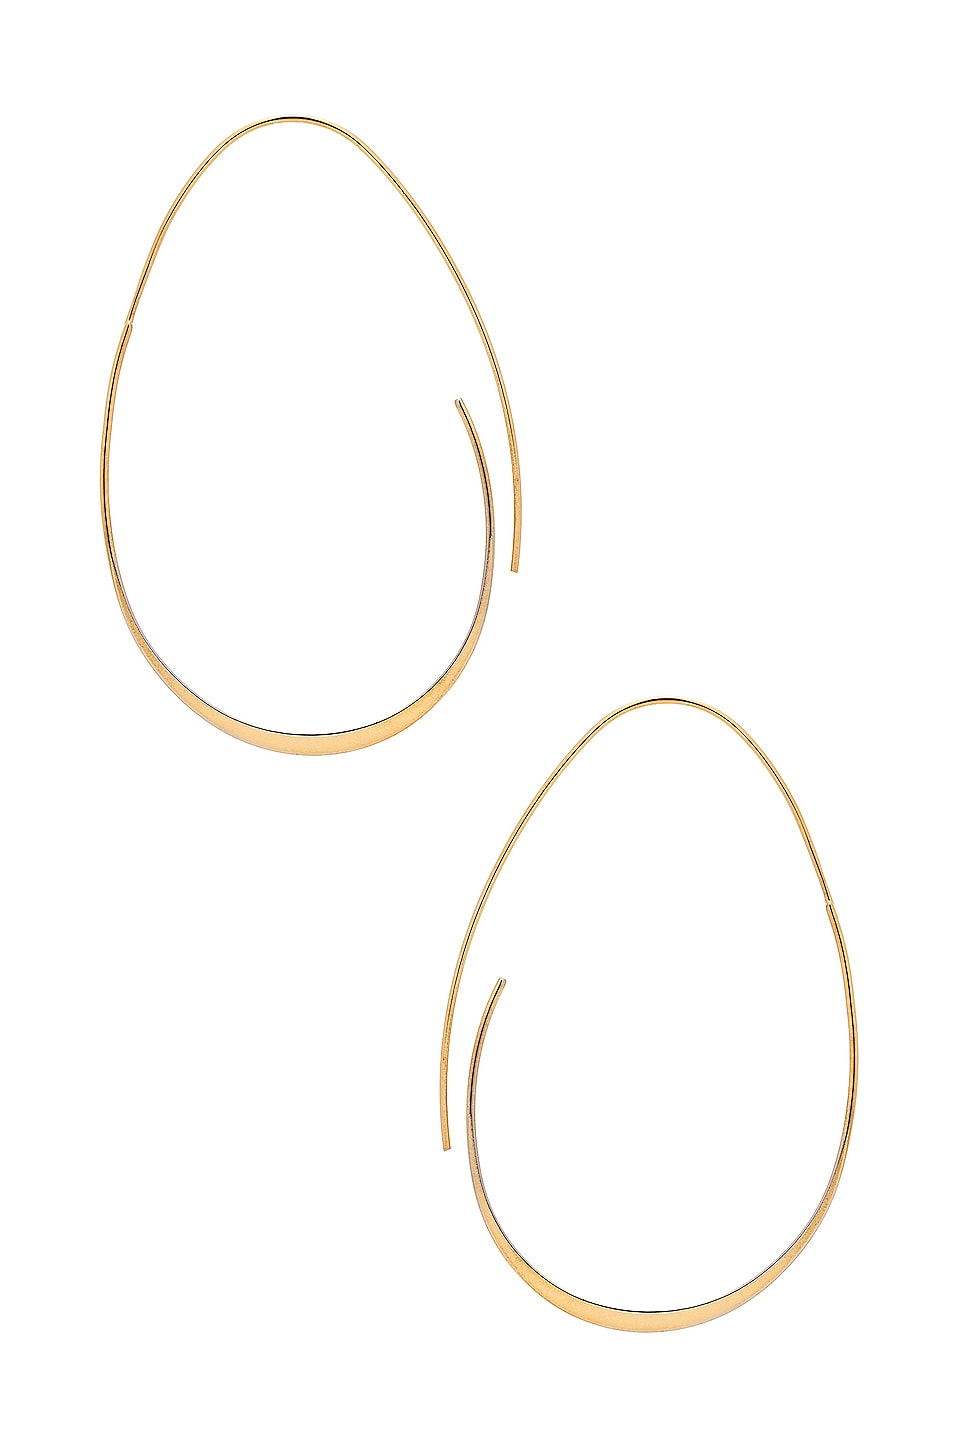 EIGHT by GJENMI JEWELRY Egg Hoops in 14K Plated Gold